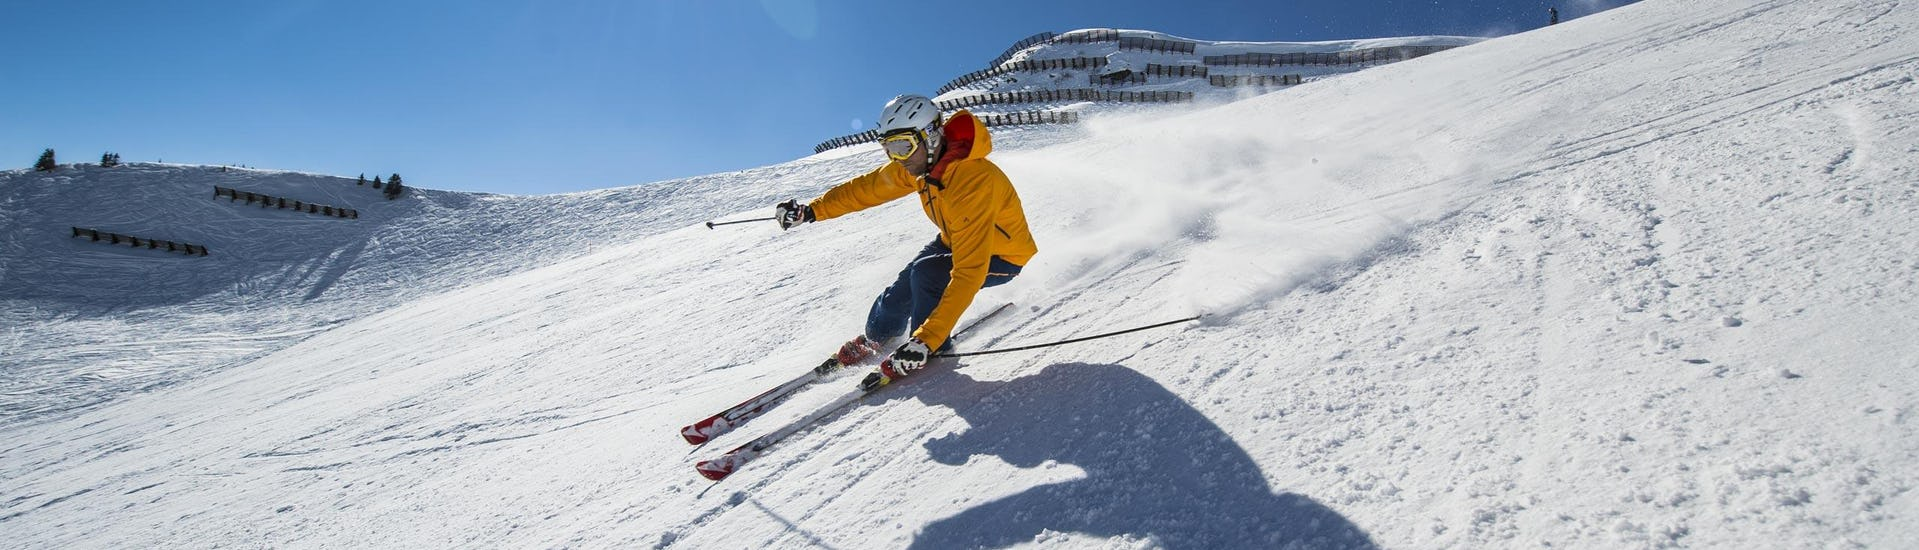 Ski Instructor Private for Adults - All Ages: A skier is skiing down a sunny ski slope while participating in an activity offered by Schneesportschule Wildkogel.